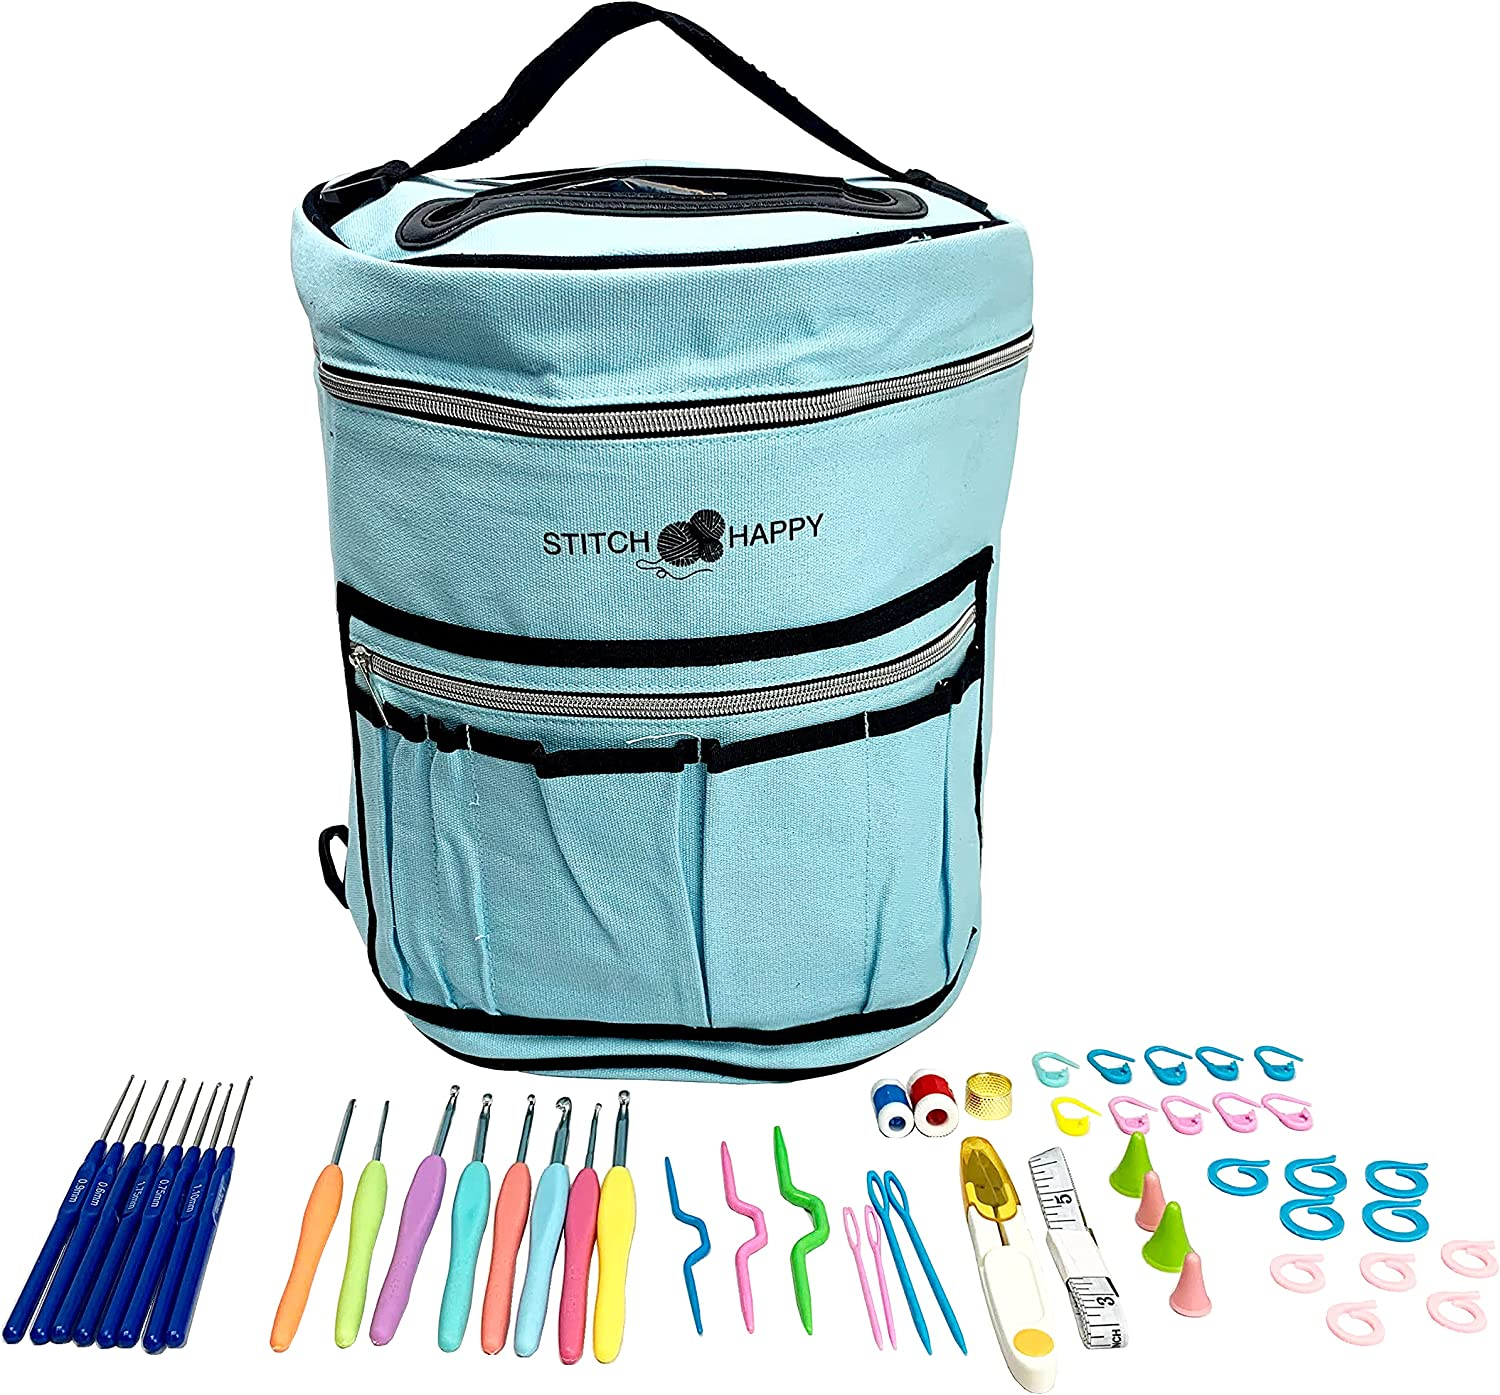 Designer Max 59% OFF Stitch Happy Crocheting Kit: Limited time for free shipping 52 B Crochet Kit Piece